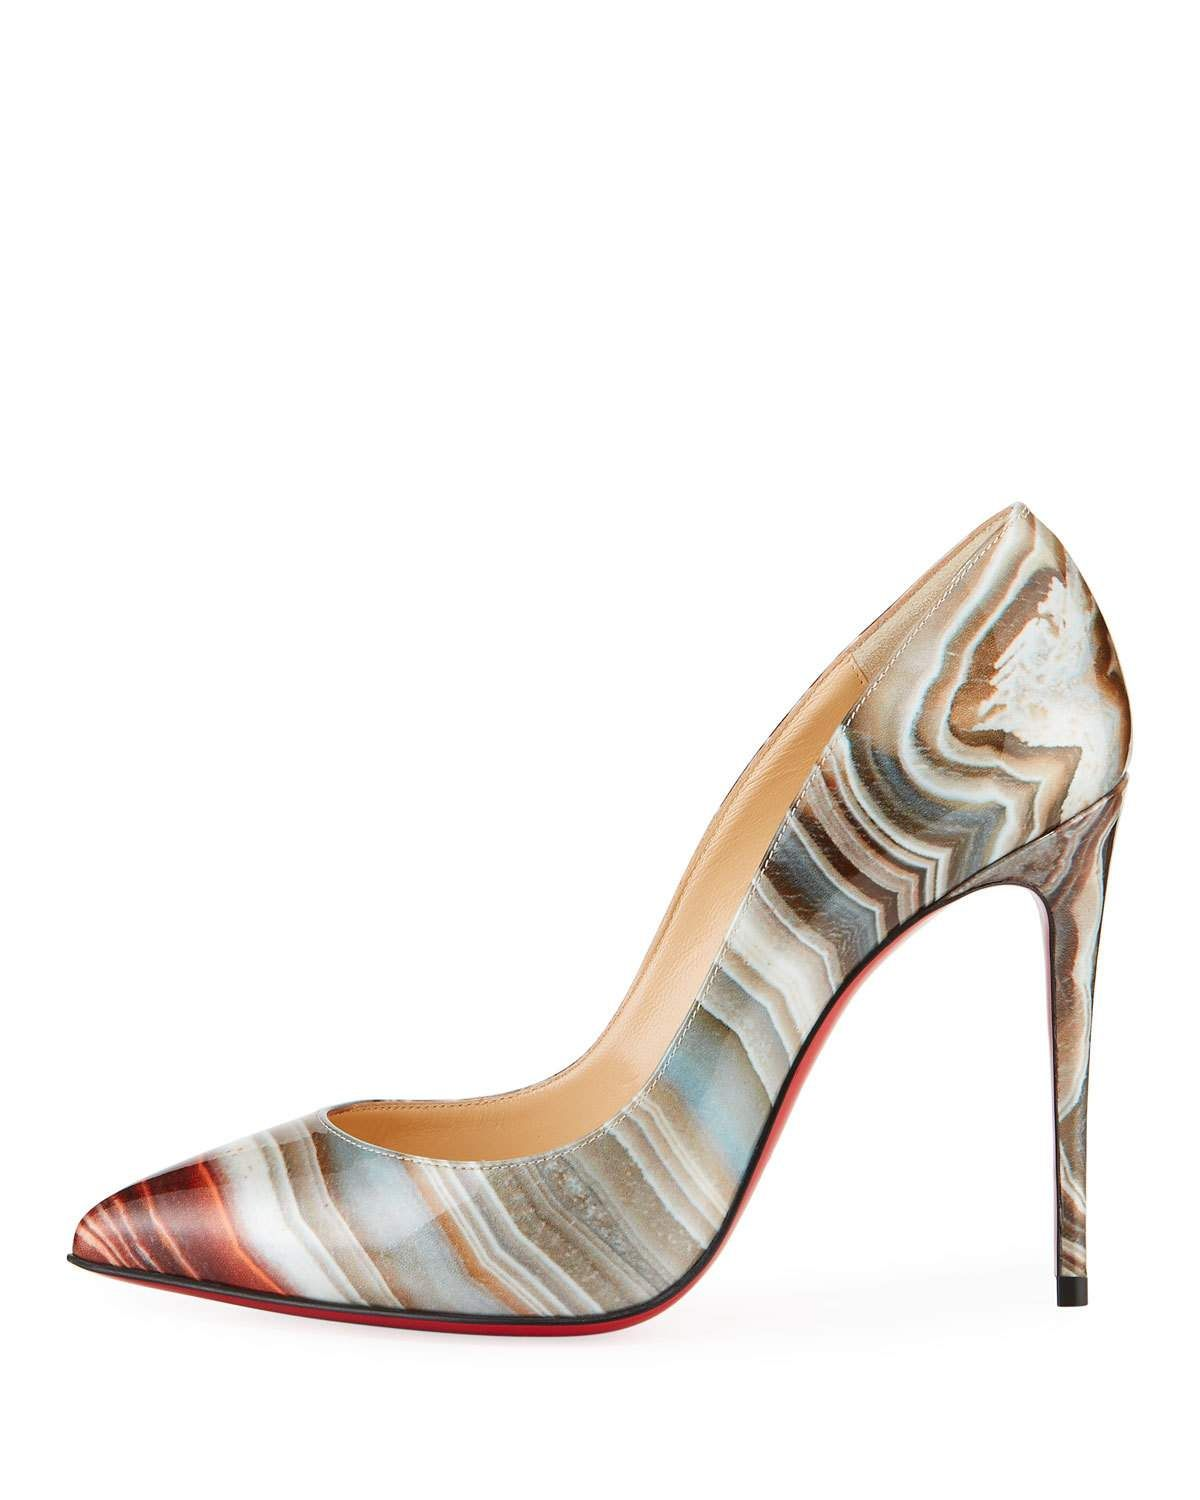 fe862237447 Christian Louboutin Pigalle Follies Red Sole Pumps